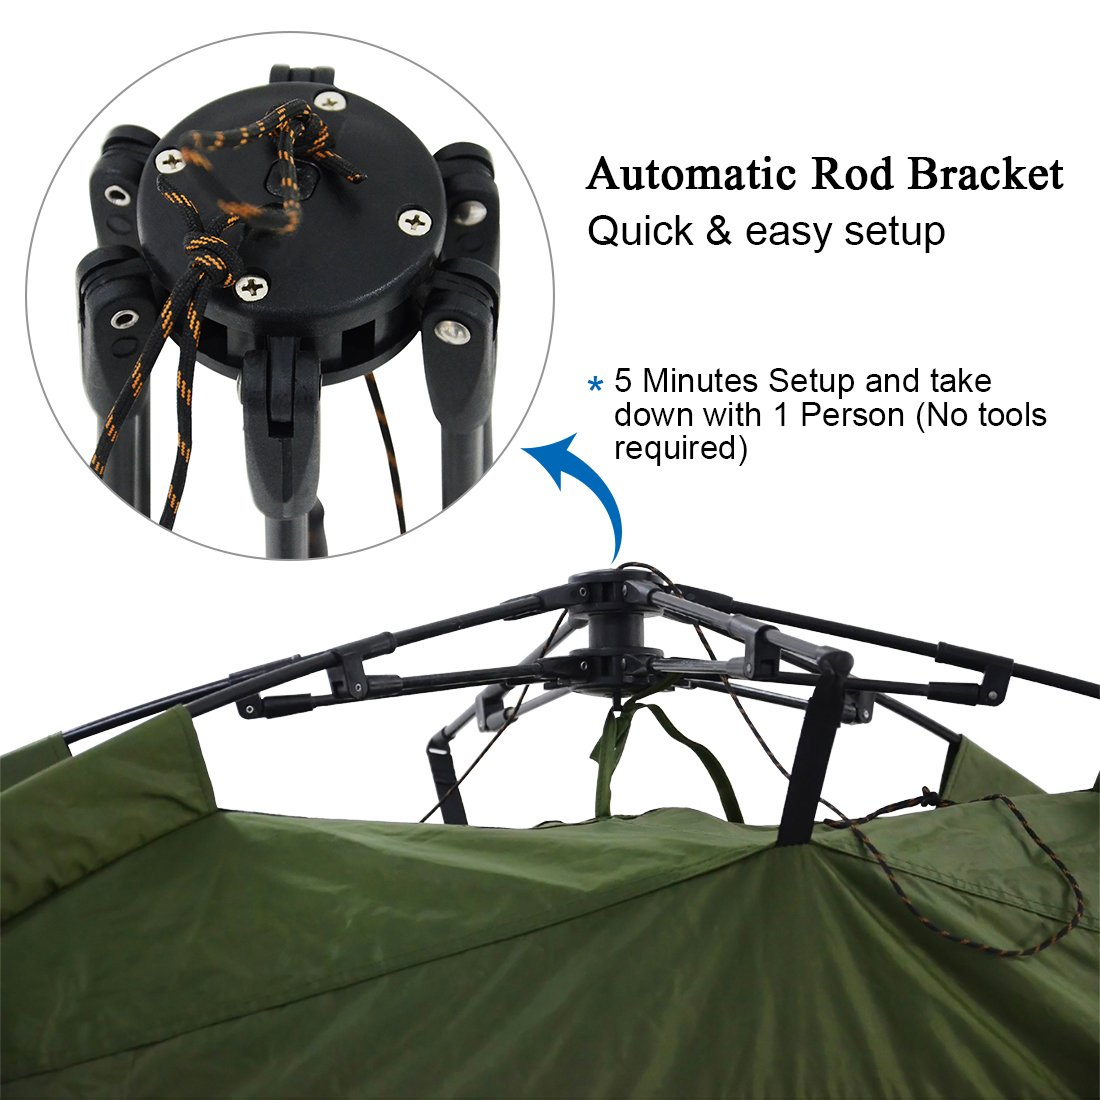 Quictent Heavy Duty Outdoor Pop Up Bike Tent Storage Shed Quick Setup Garage with Automatic rod bracket, Waterproof and Anti-UV Protection Hood (Bike tent)